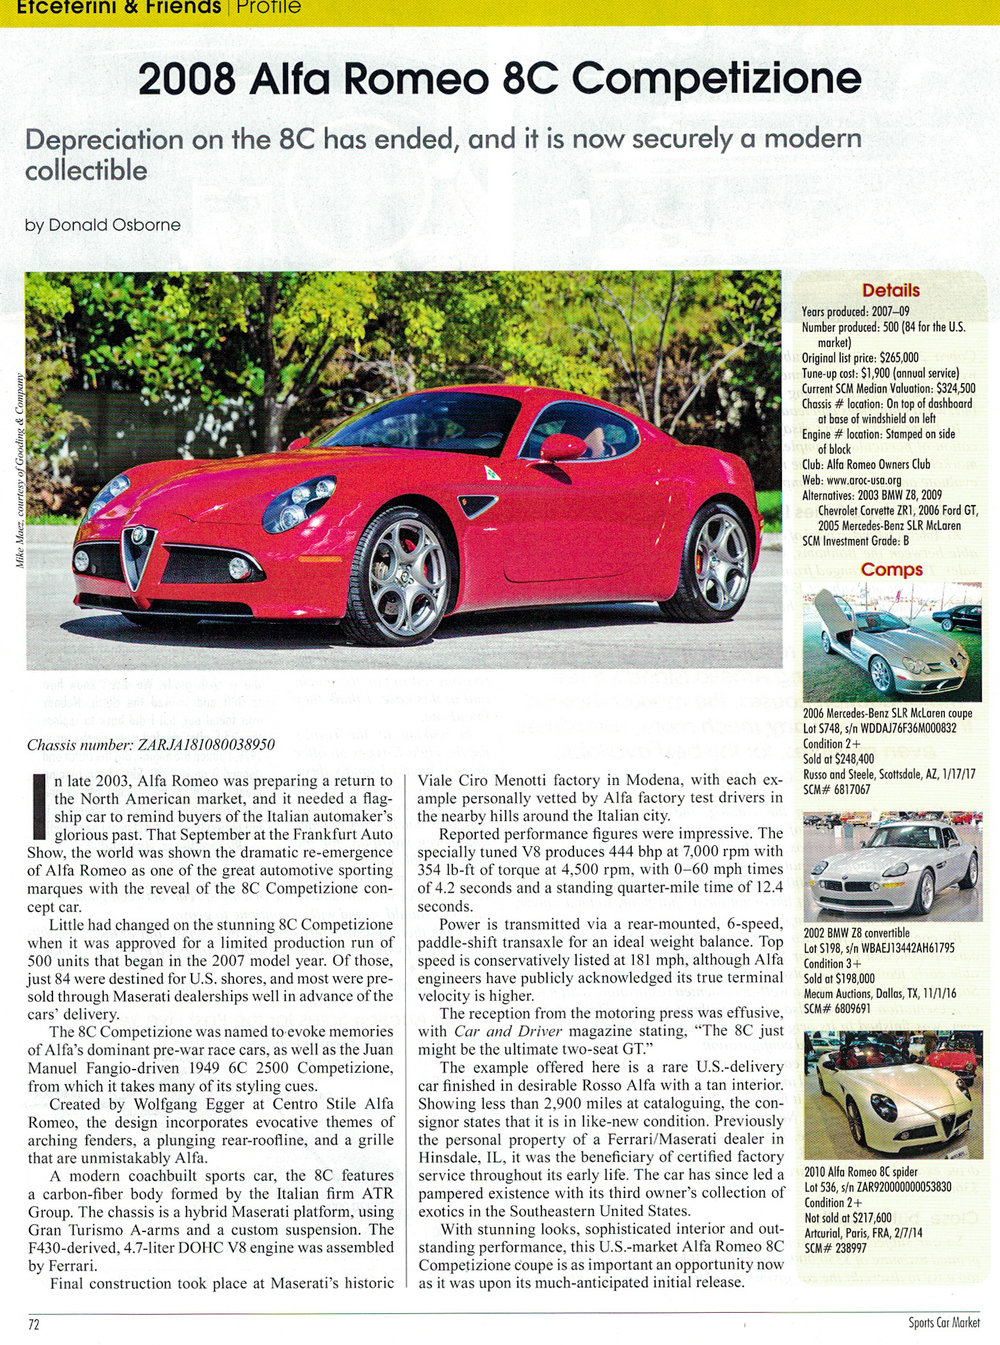 2008 Alfa 8C Profile - SCM June 2017-1.jpg